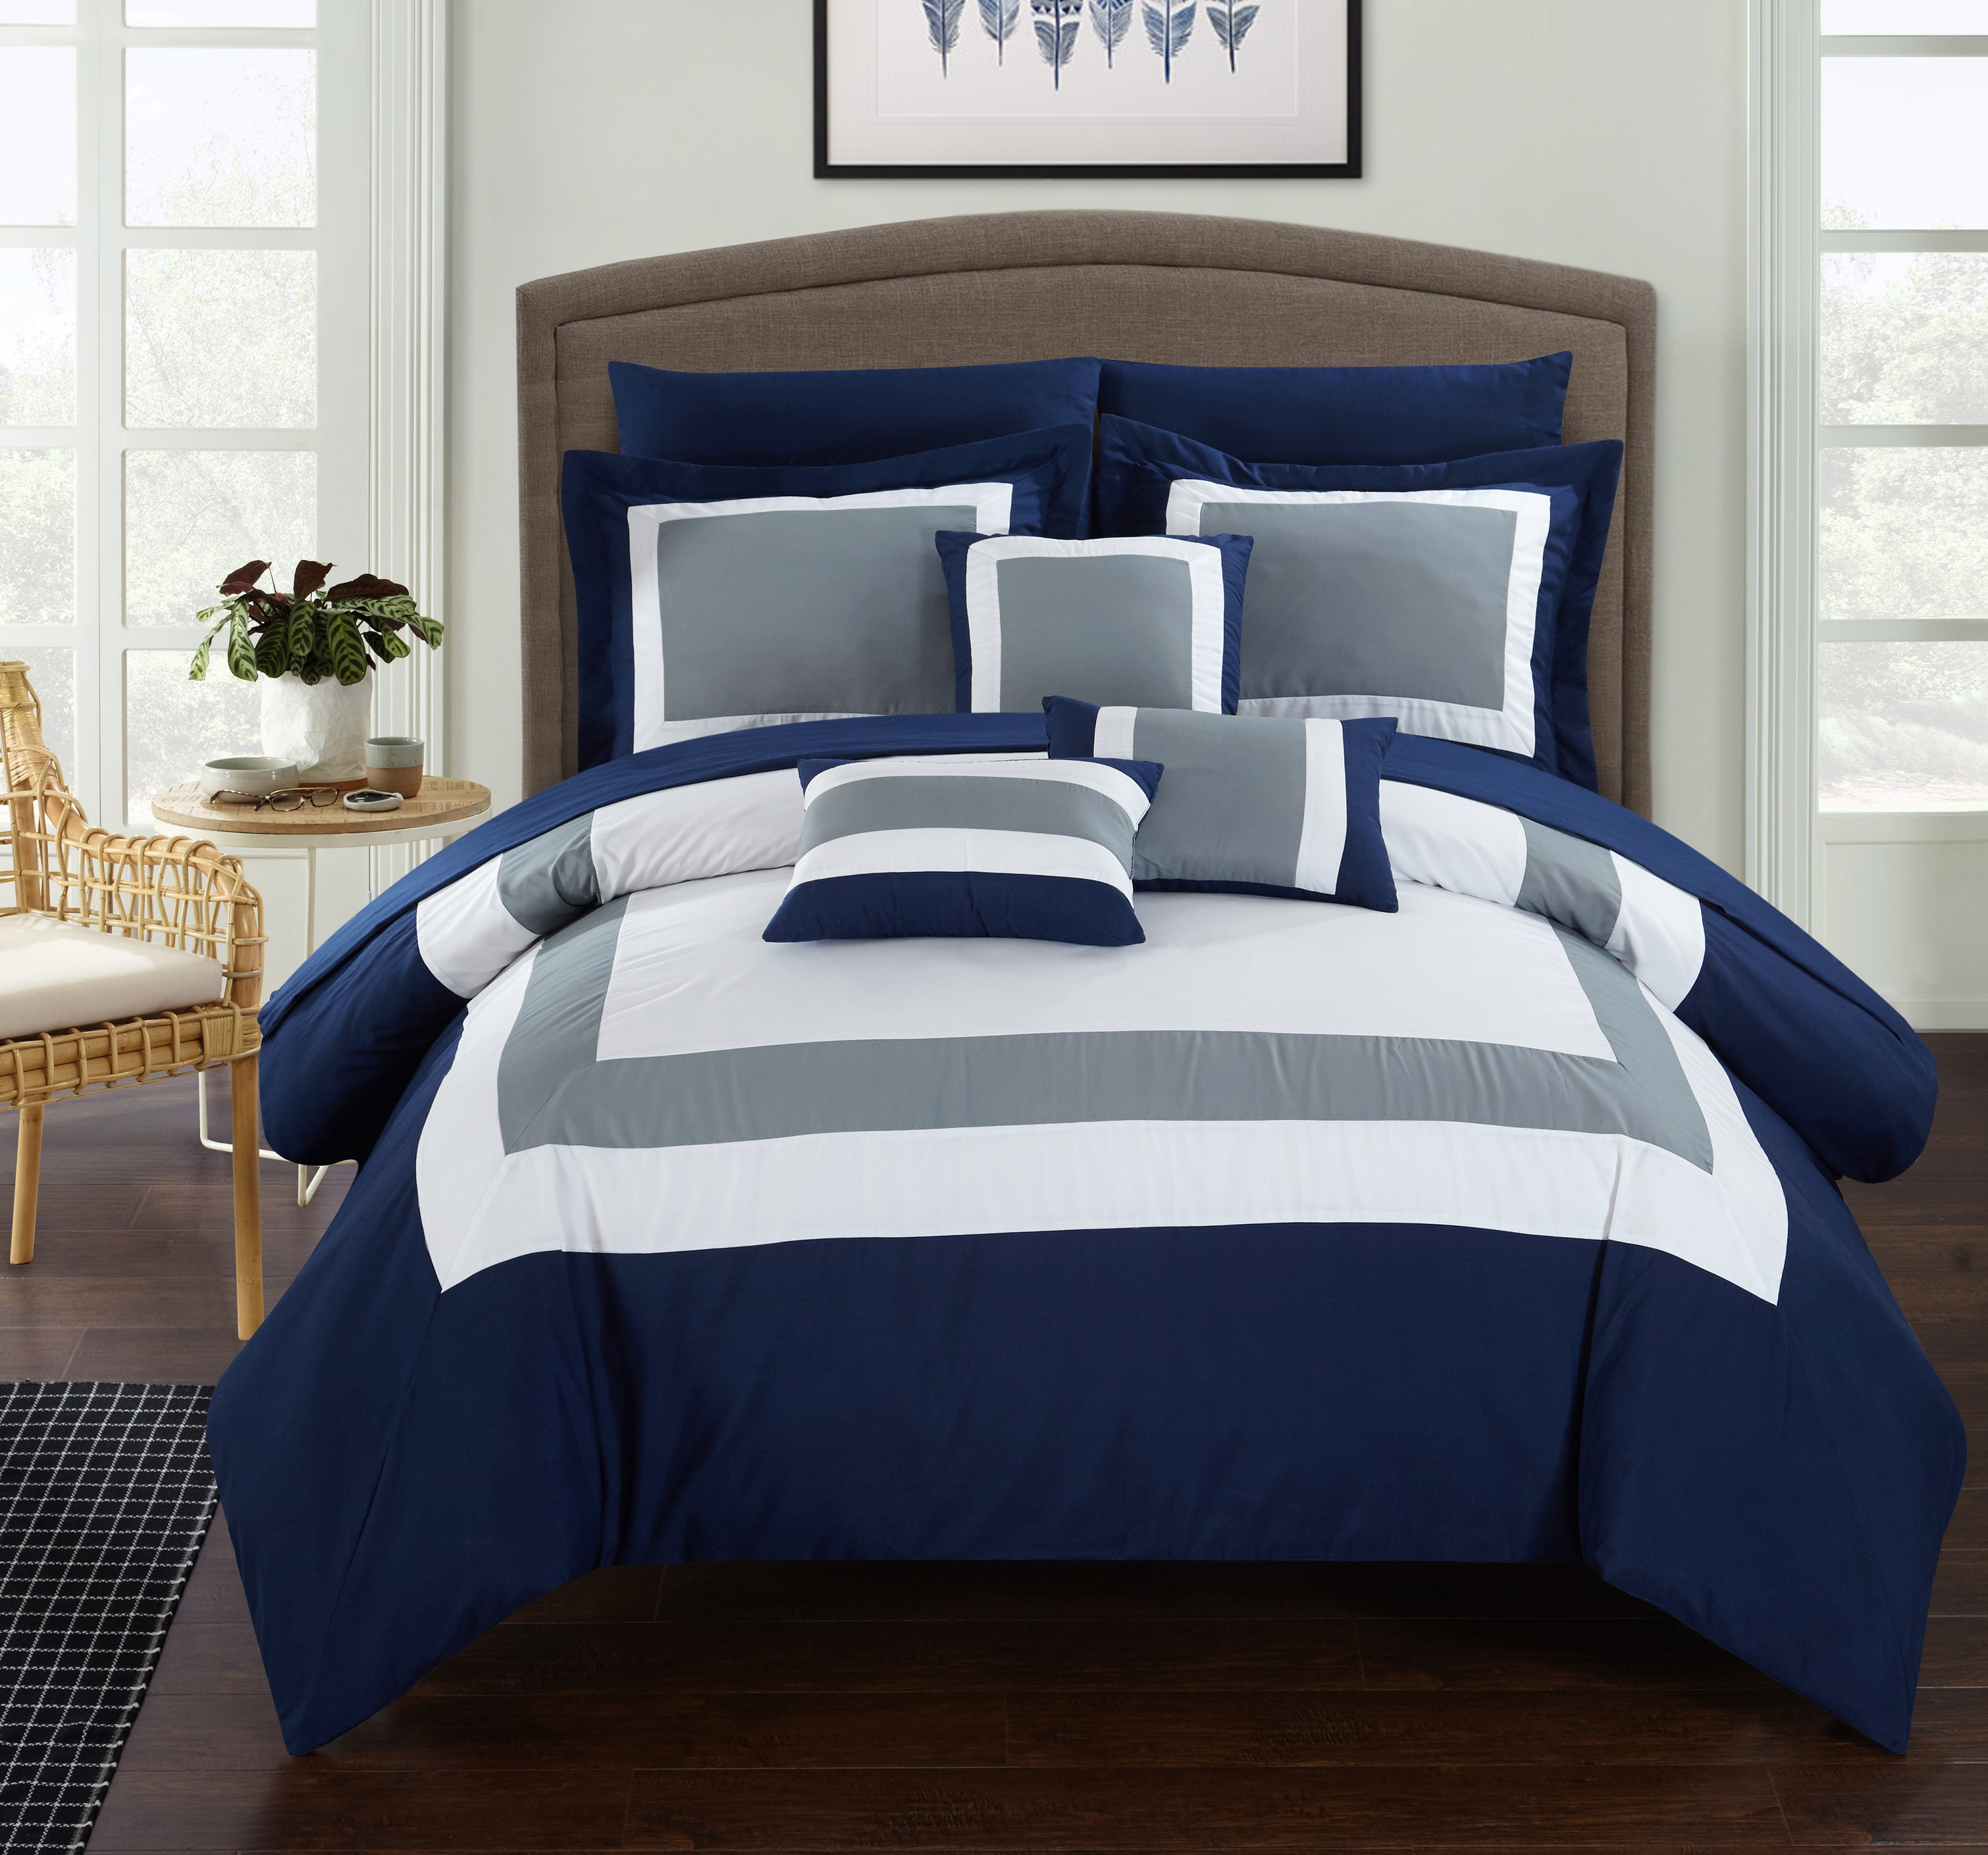 Chic Home 10-Piece Darren Patchwork Color Block Complete King Bed In a Bag Comforter Set Navy Sheets Included